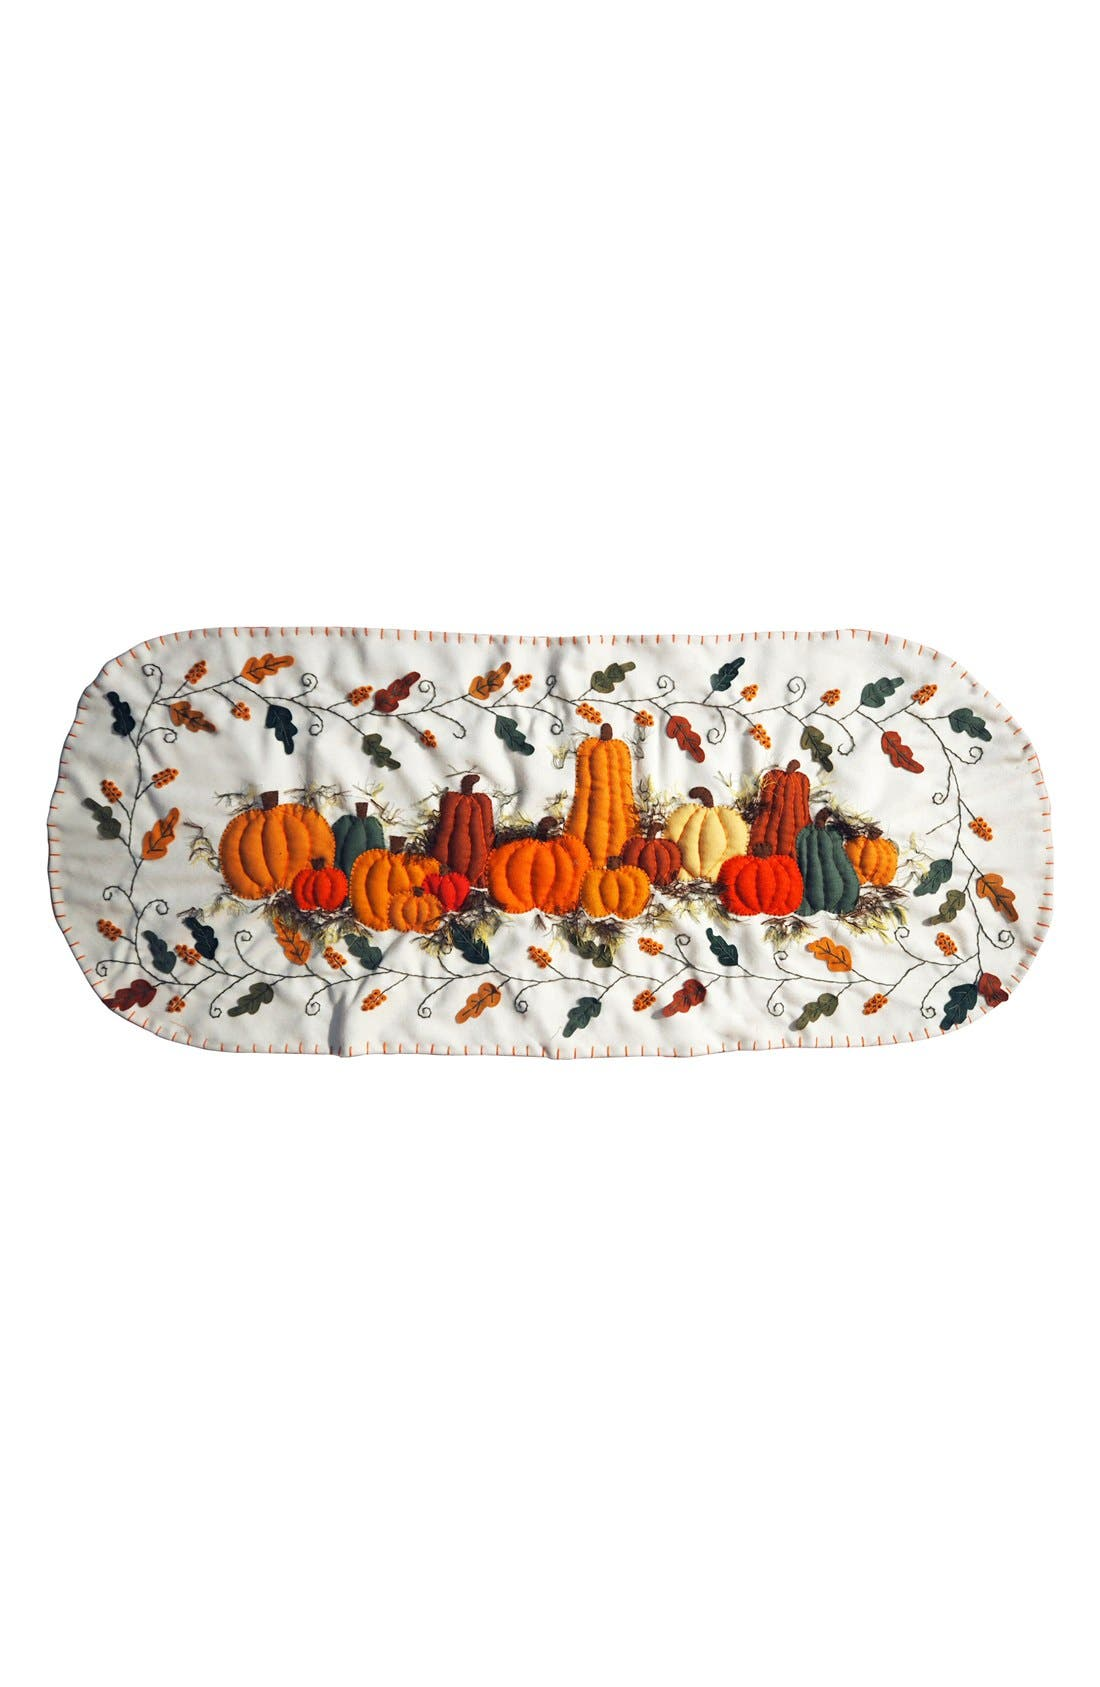 New World Arts Pumpkins Table Runner